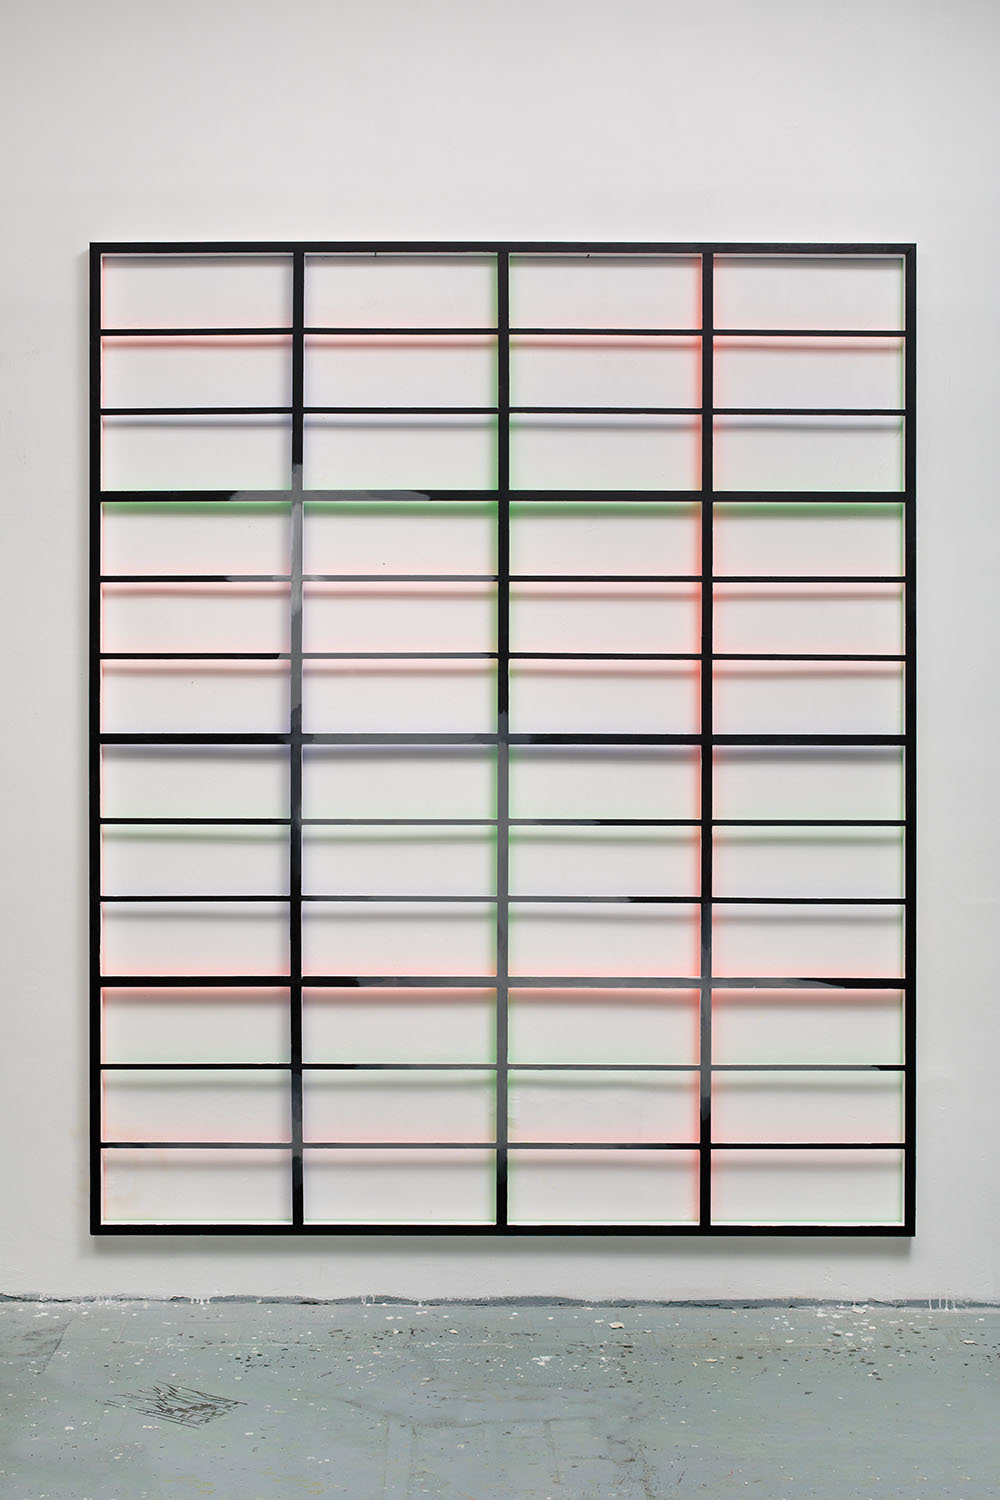 RGB grid no. 2 from DATA series / 280 x 225 x 5 cm / mixed media, wood / 2015